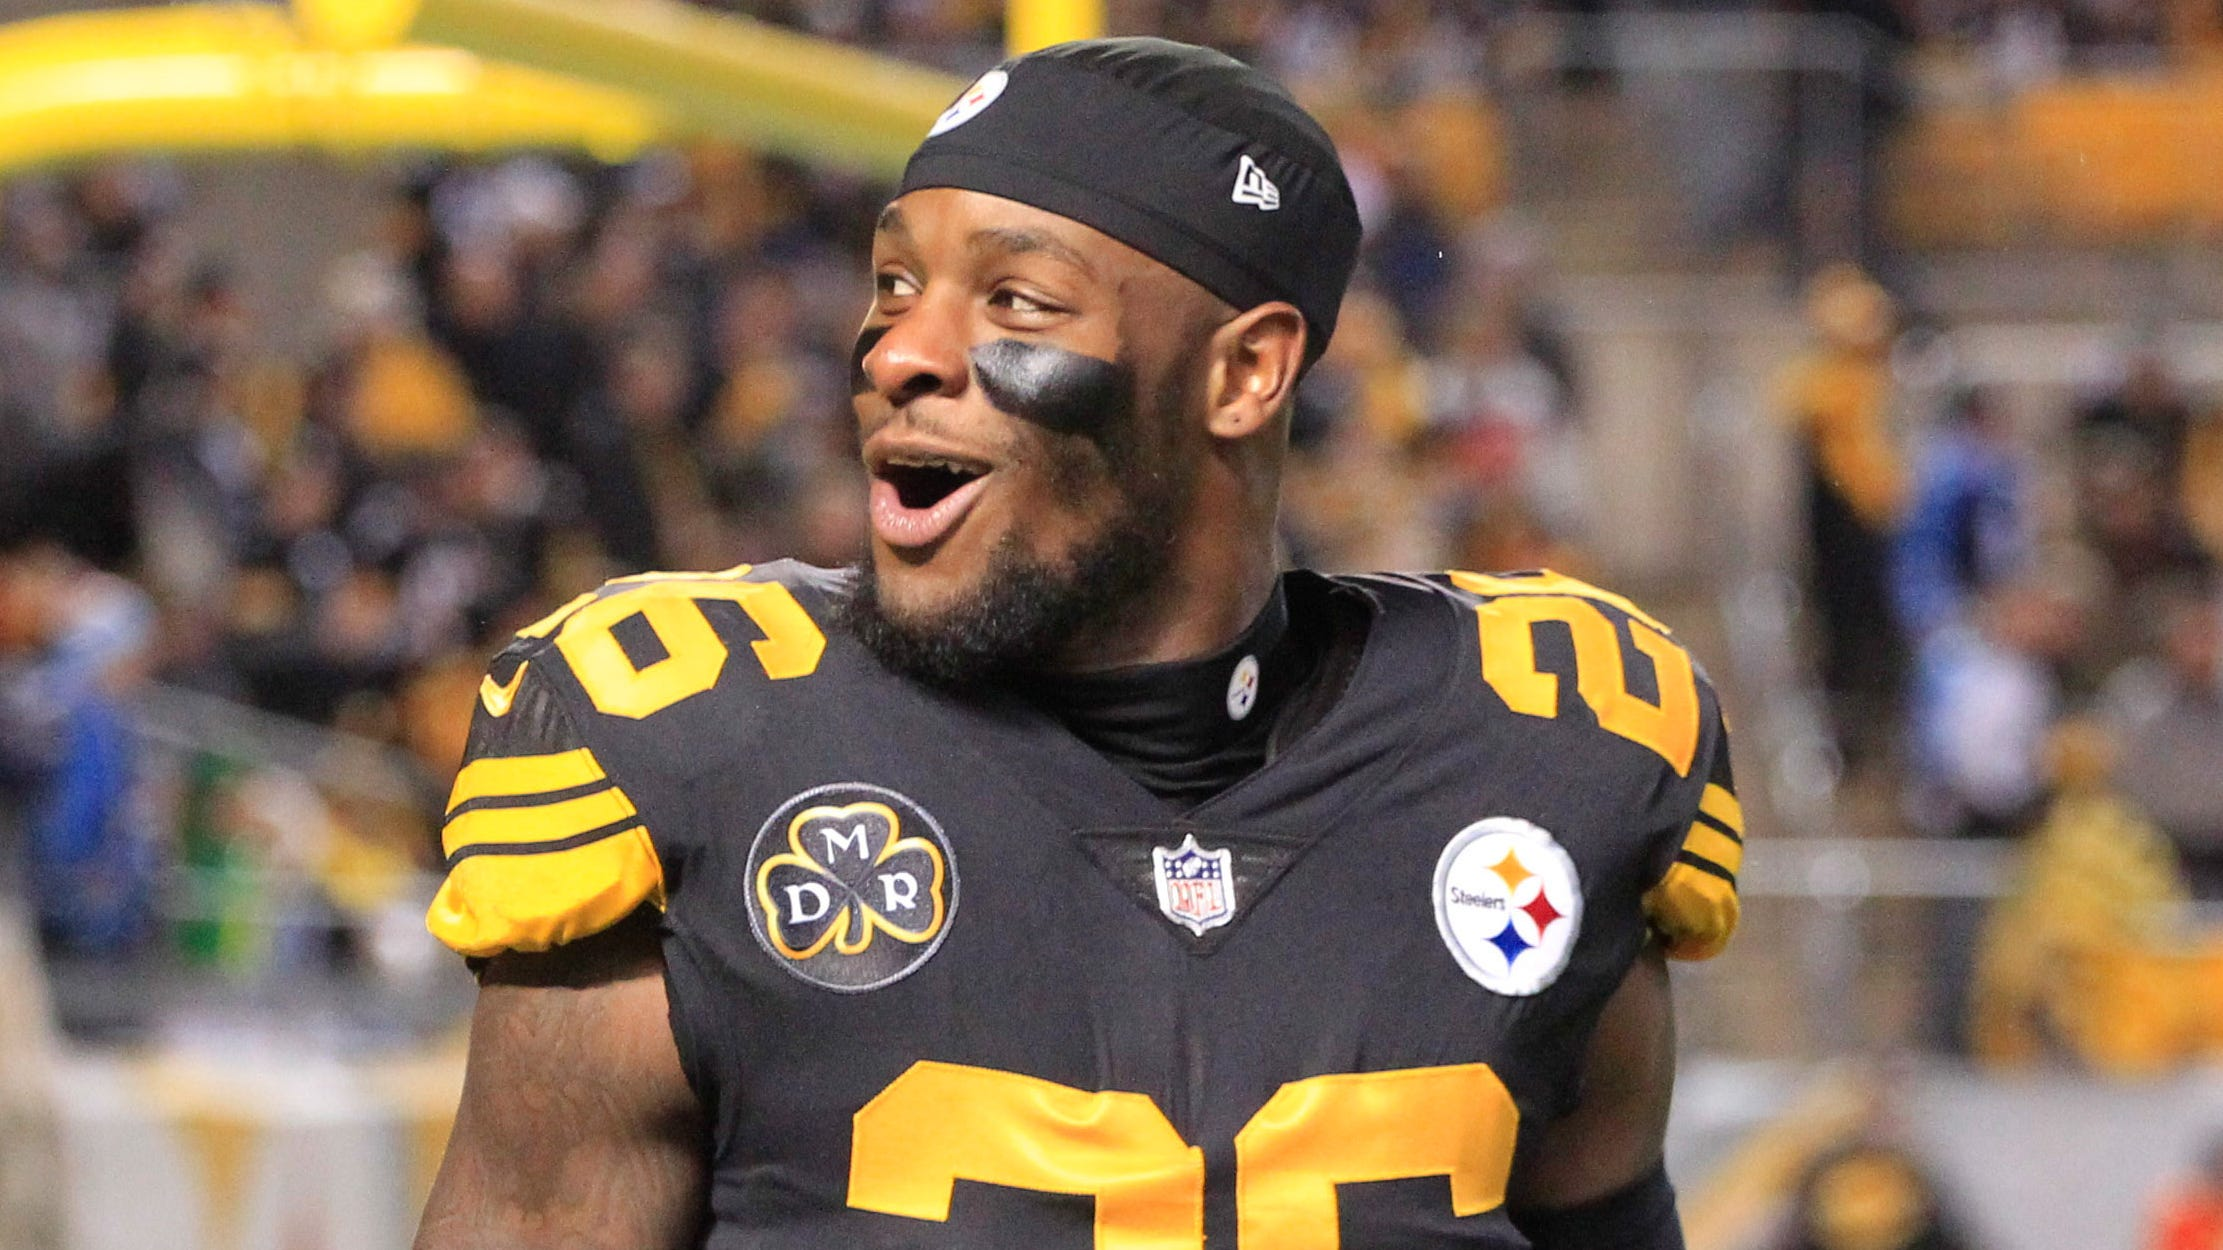 Pittsburgh Steelers running back Le'Veon Bell (26) reacts to the crowd before playing the Tennessee Titans at Heinz Field.